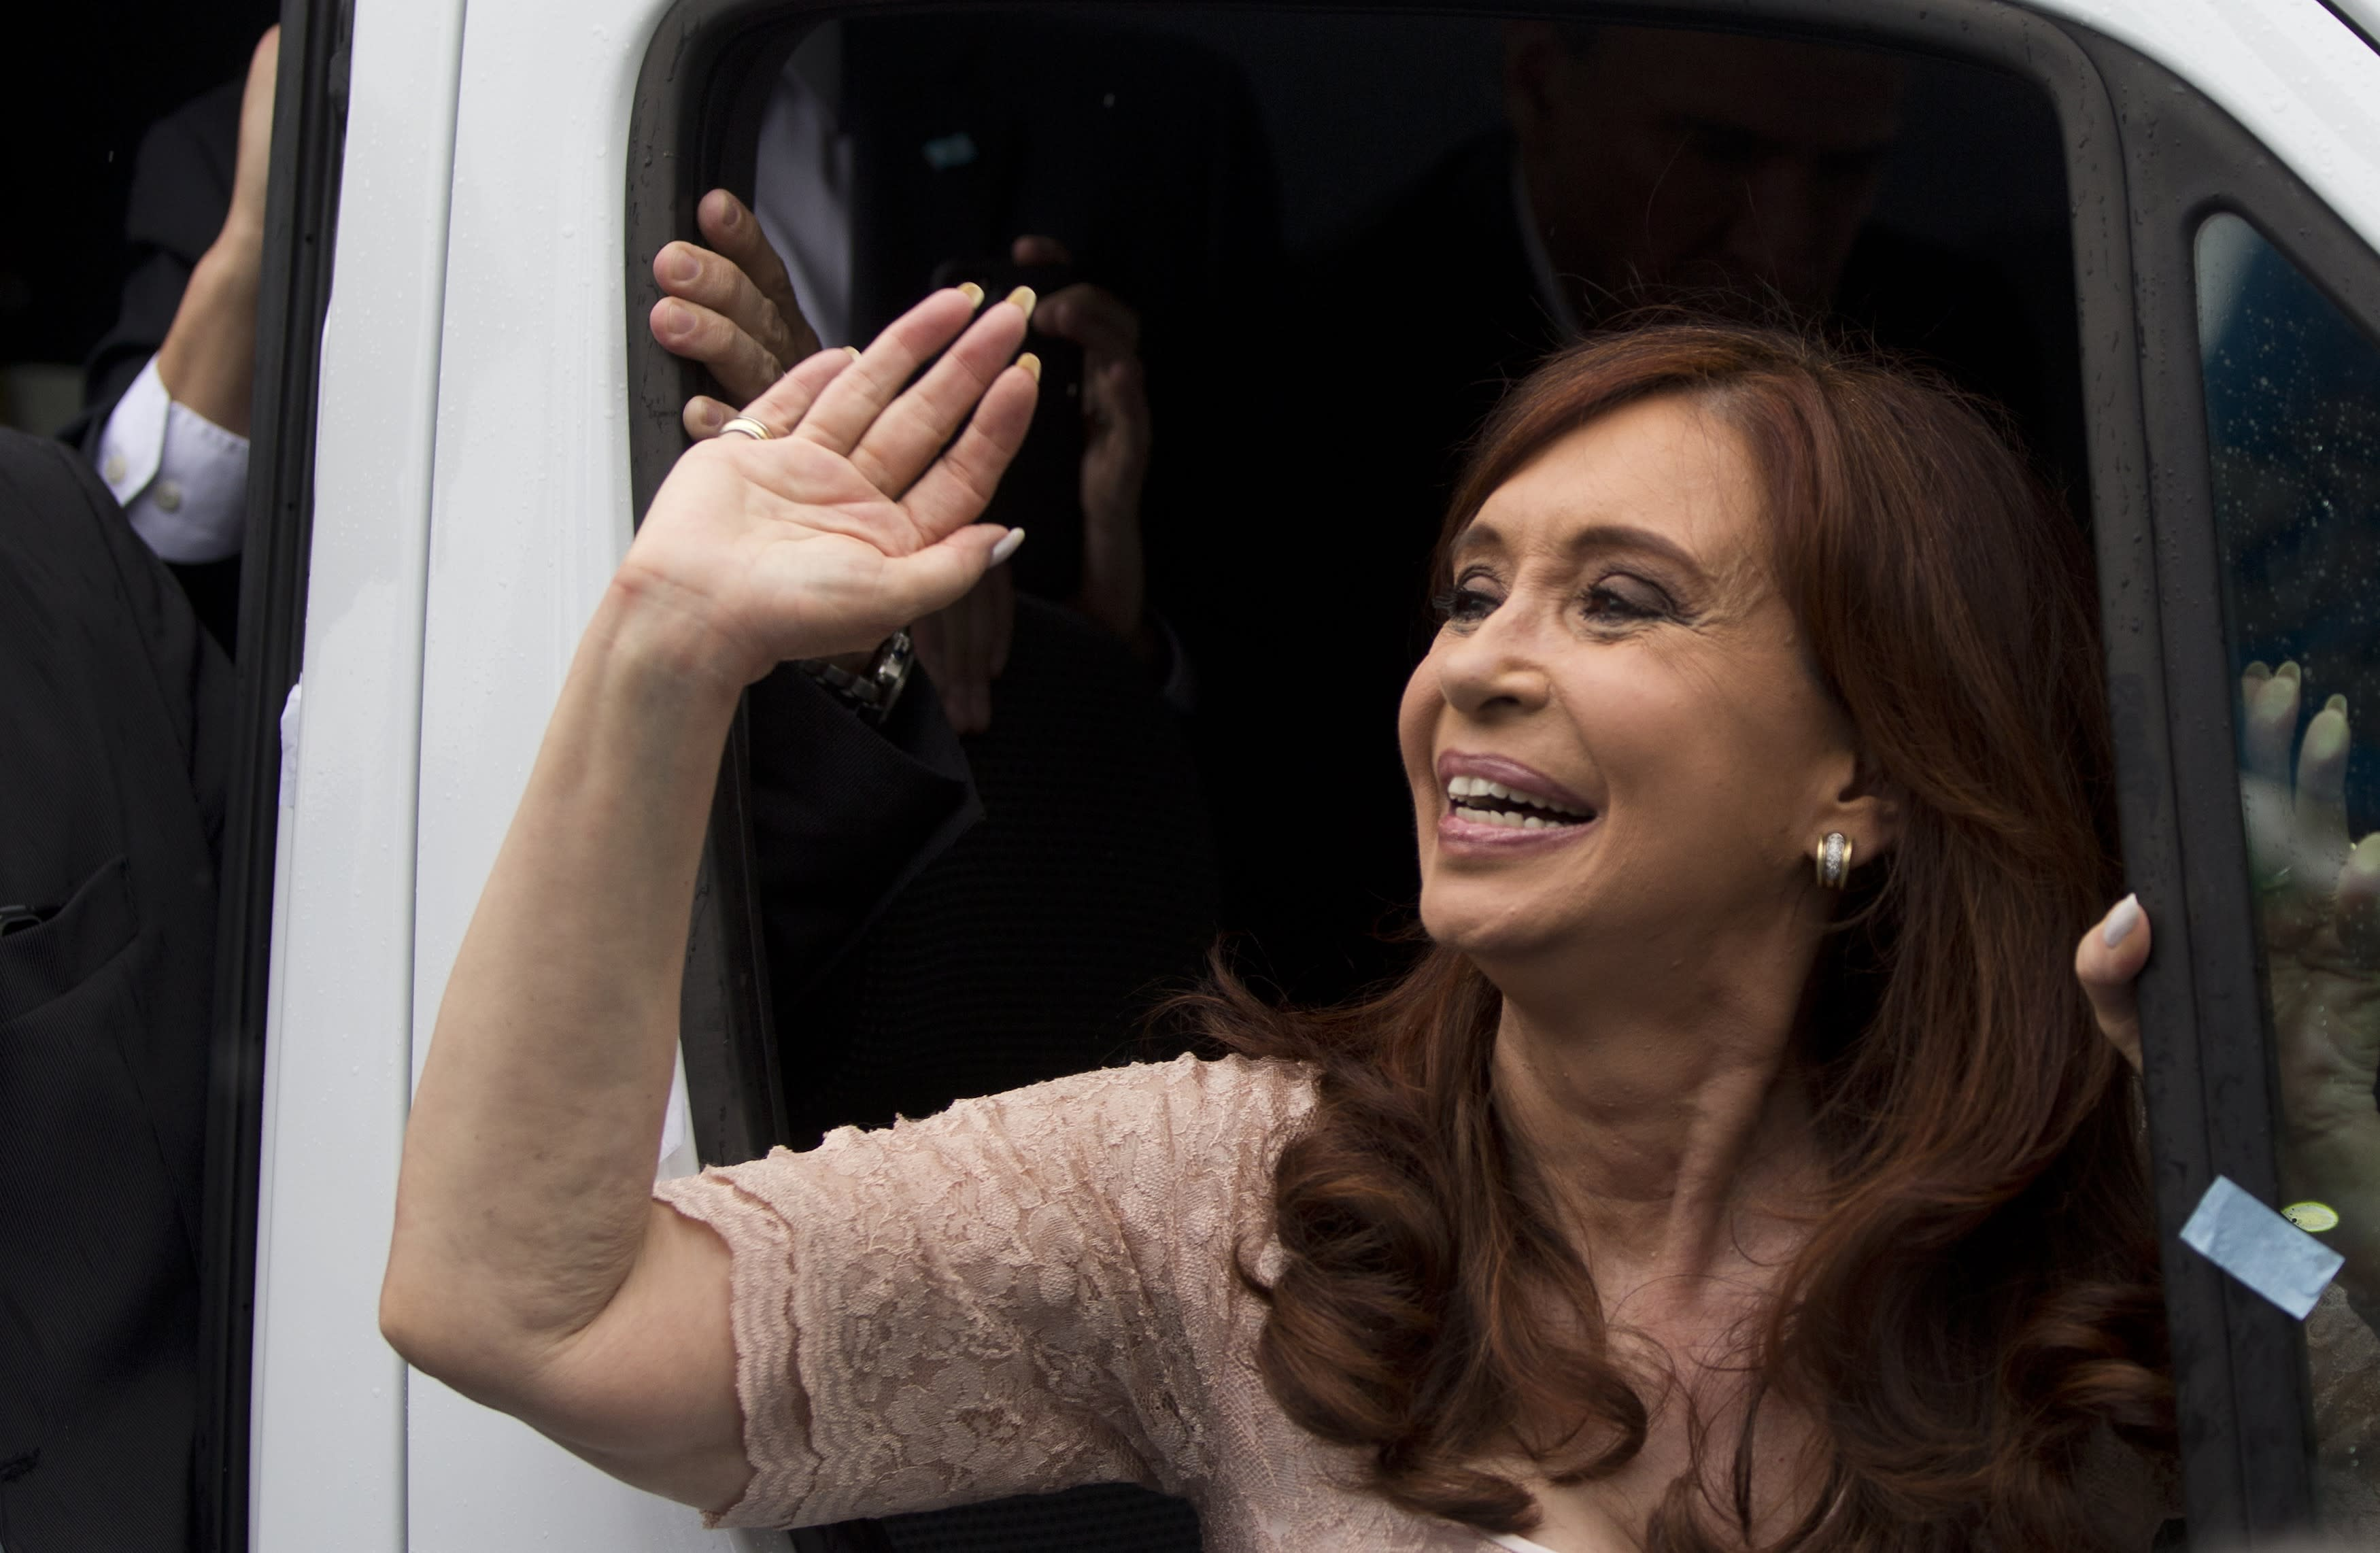 Appeal of case returns focus to Argentine president